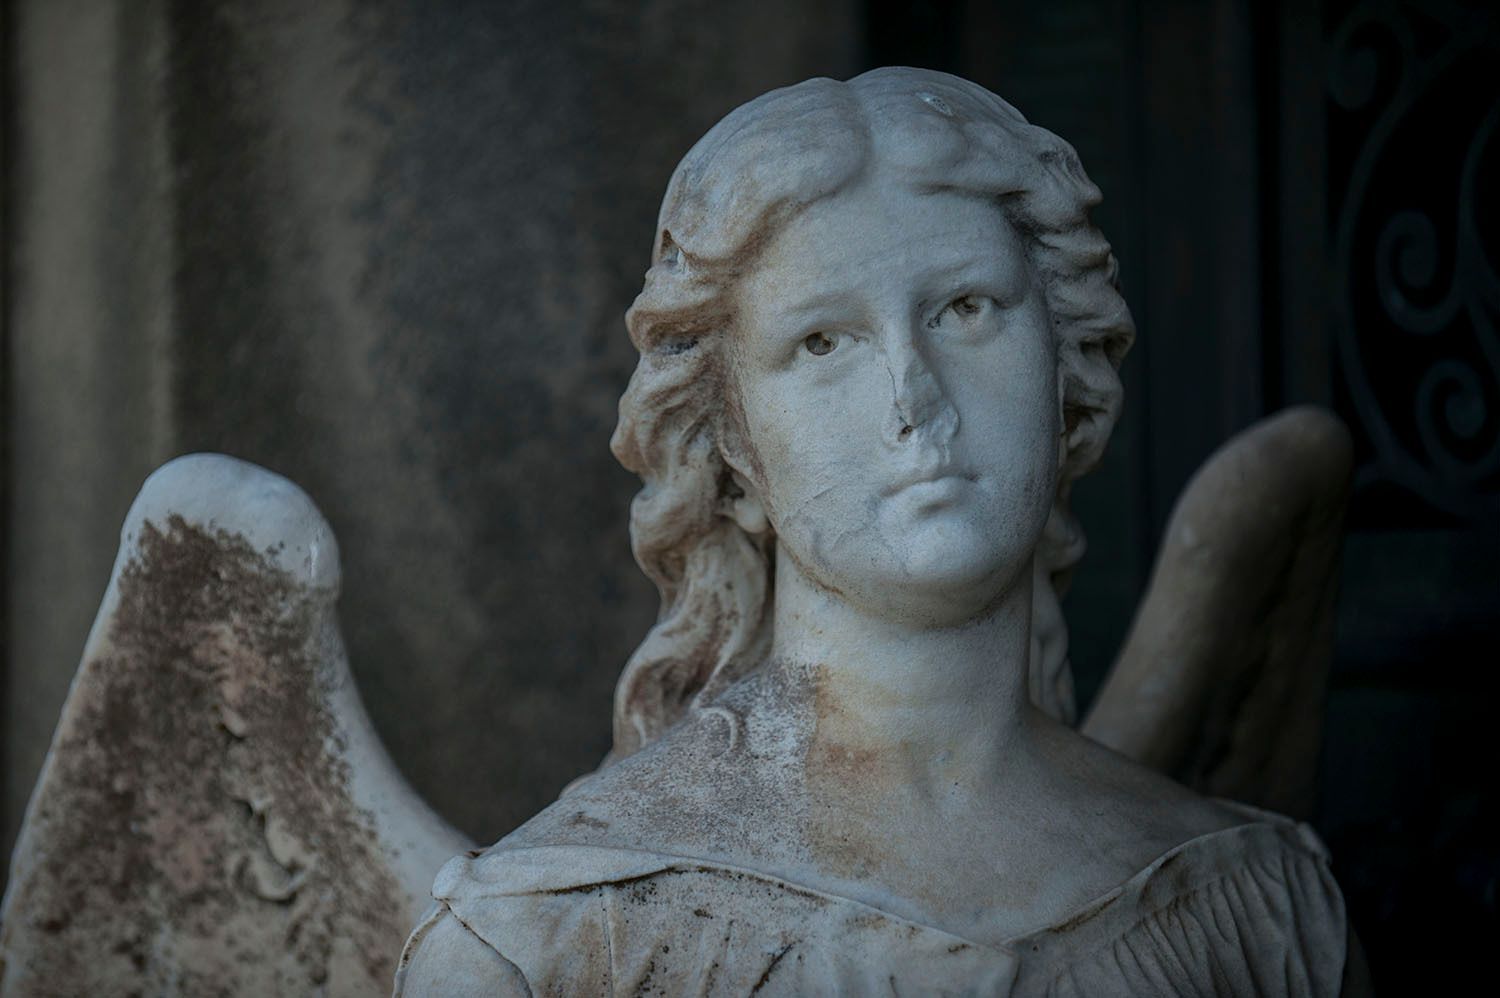 Angel with broken nose guarding grave